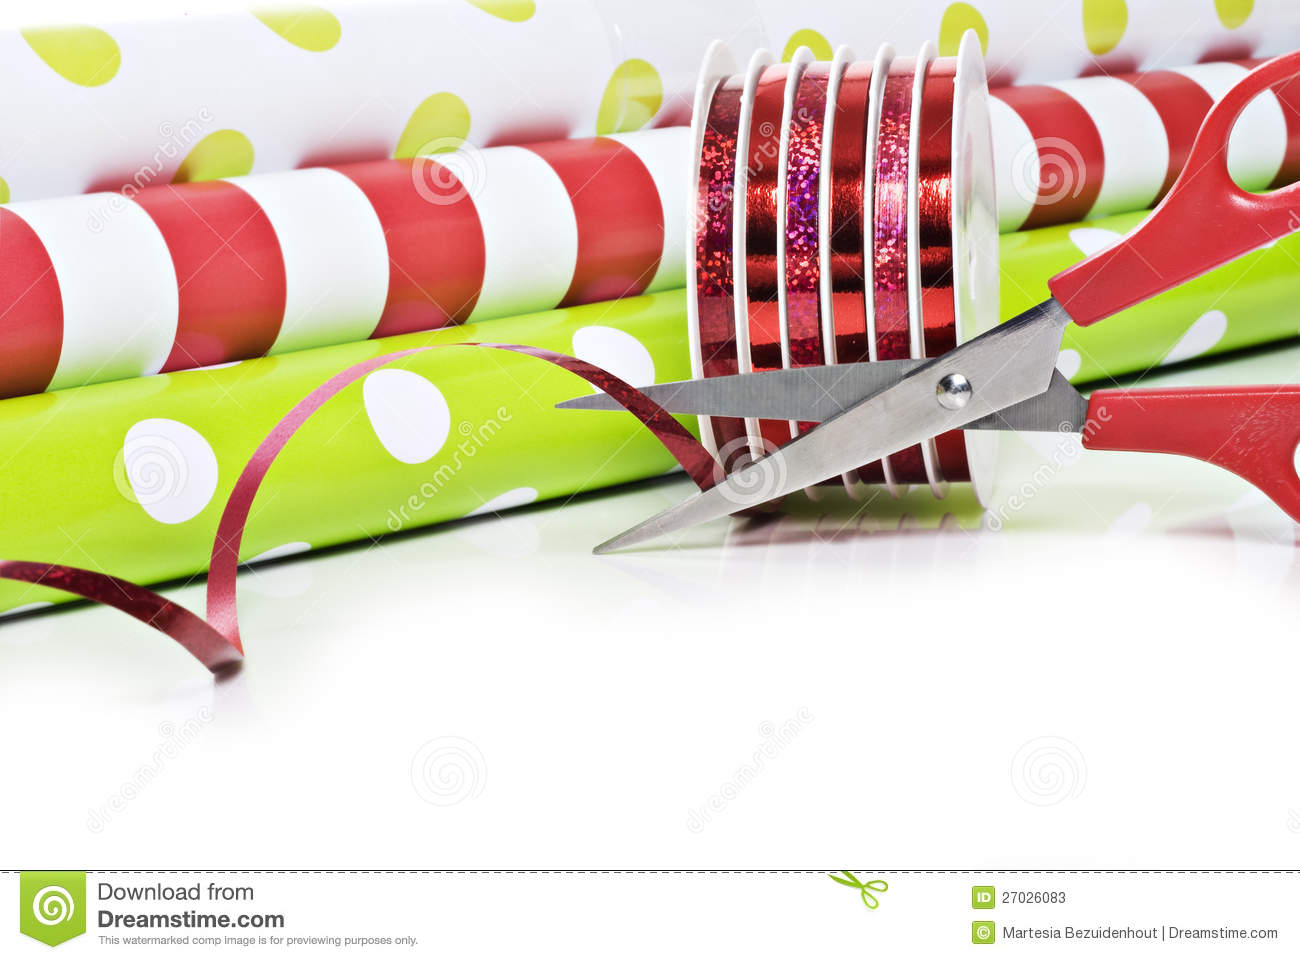 Marketing a Gift Wrapping Services Business